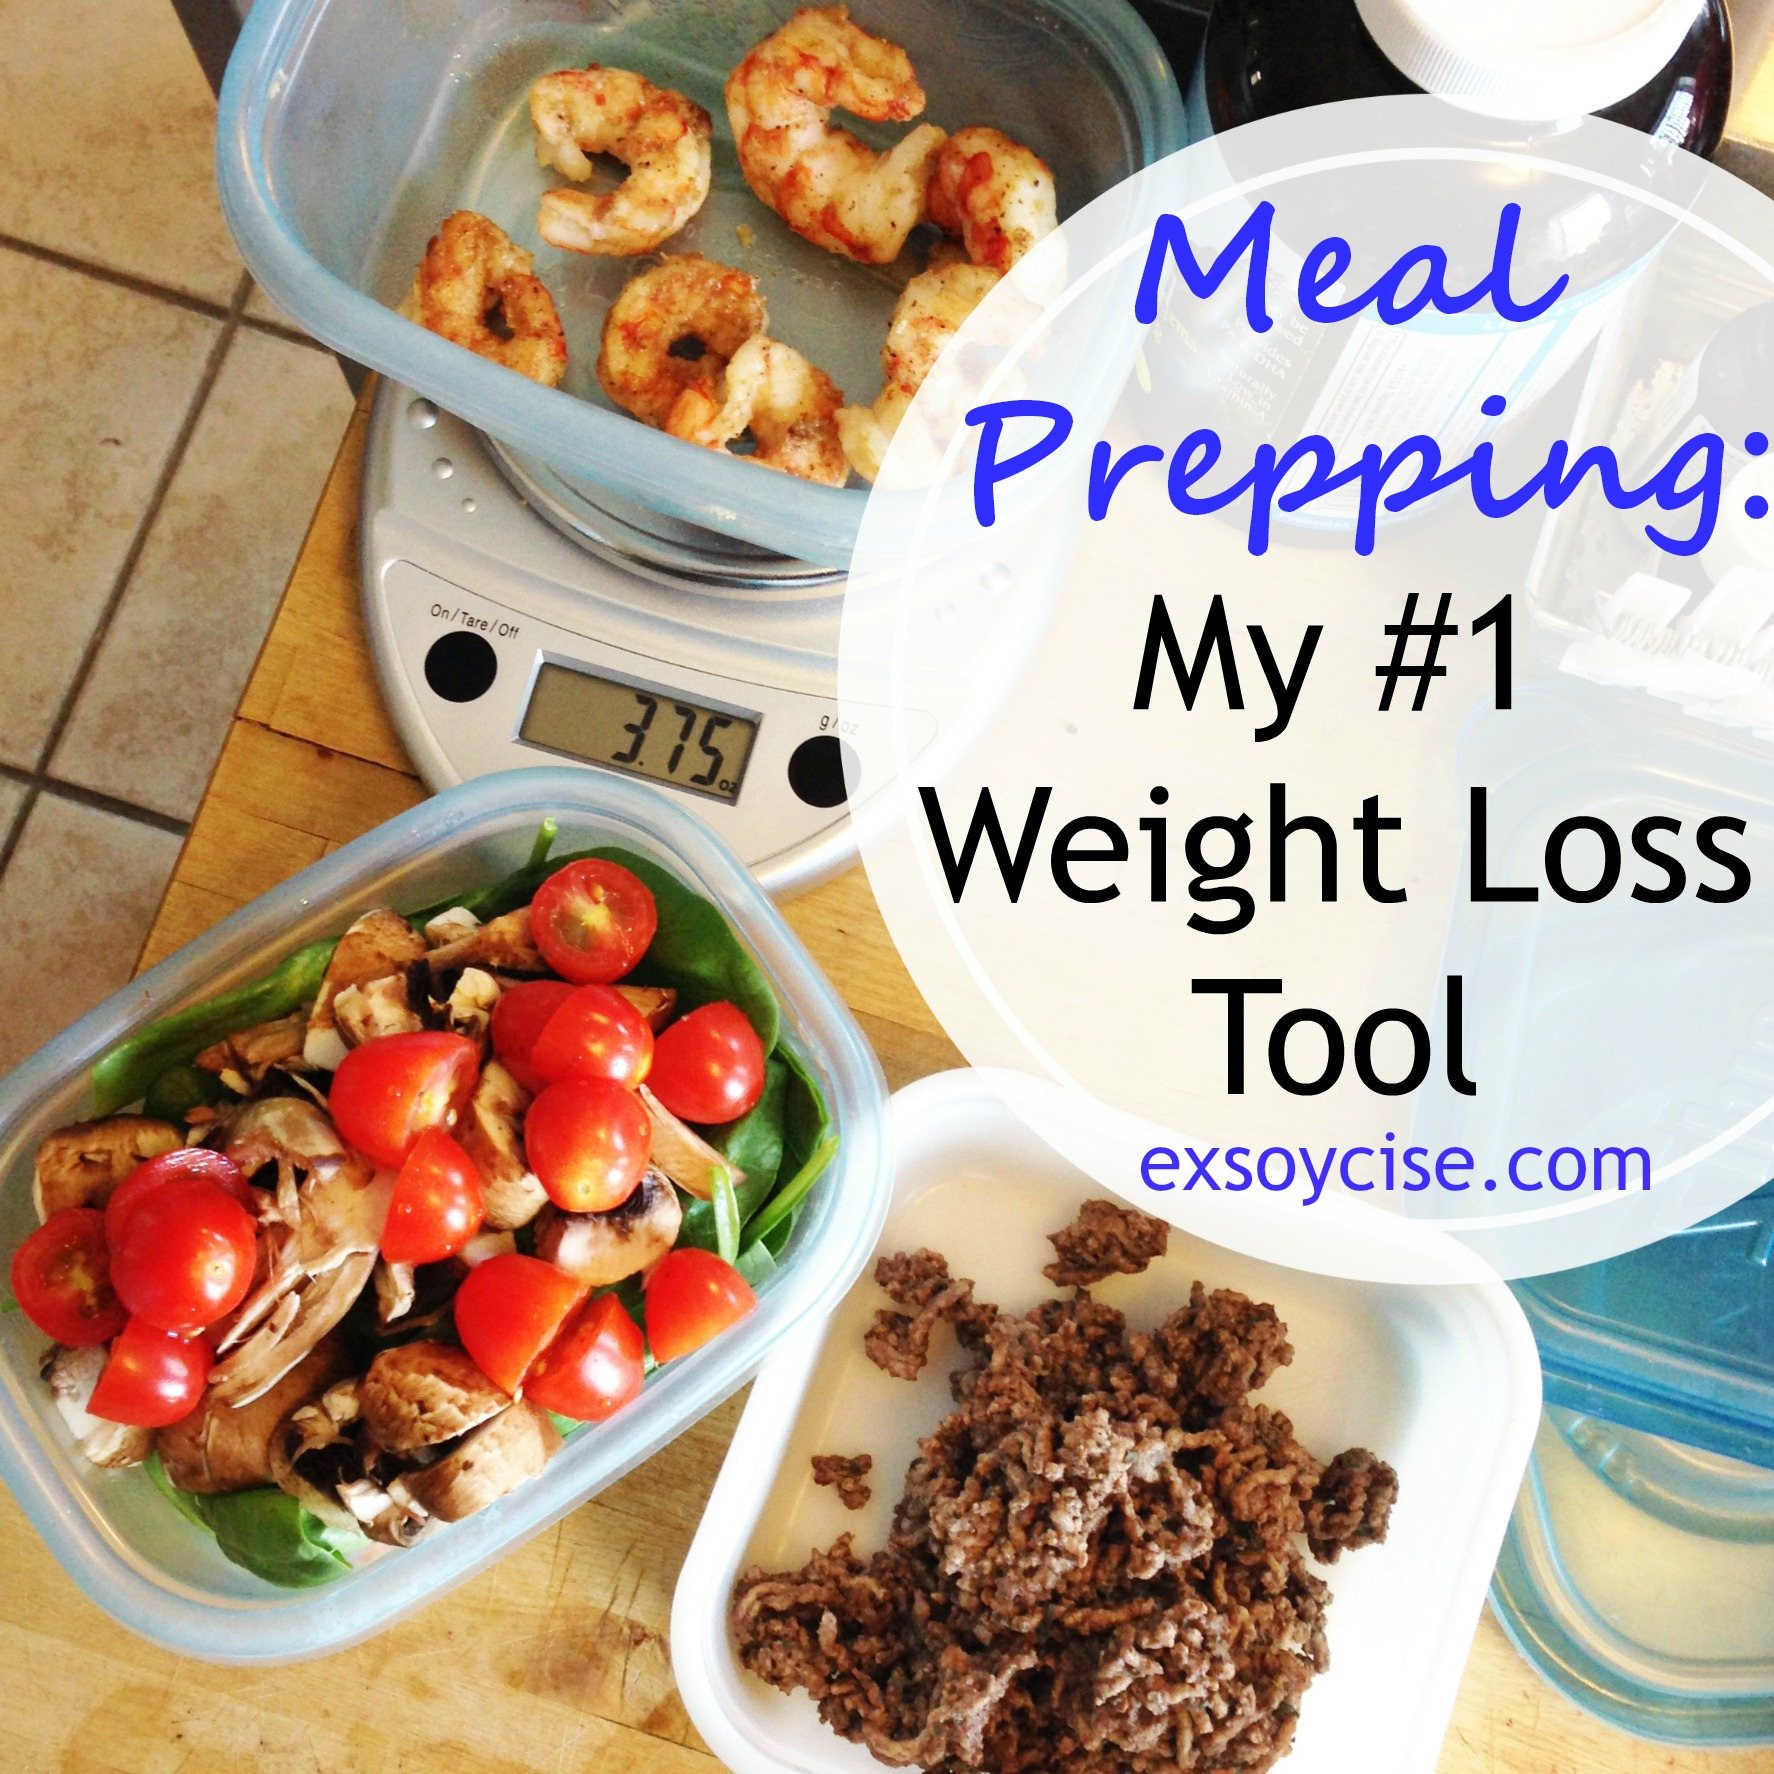 Meal Prepping: My #1 Weight Loss Tool + a Roasted Garlic Rosemary Chicken Recipe